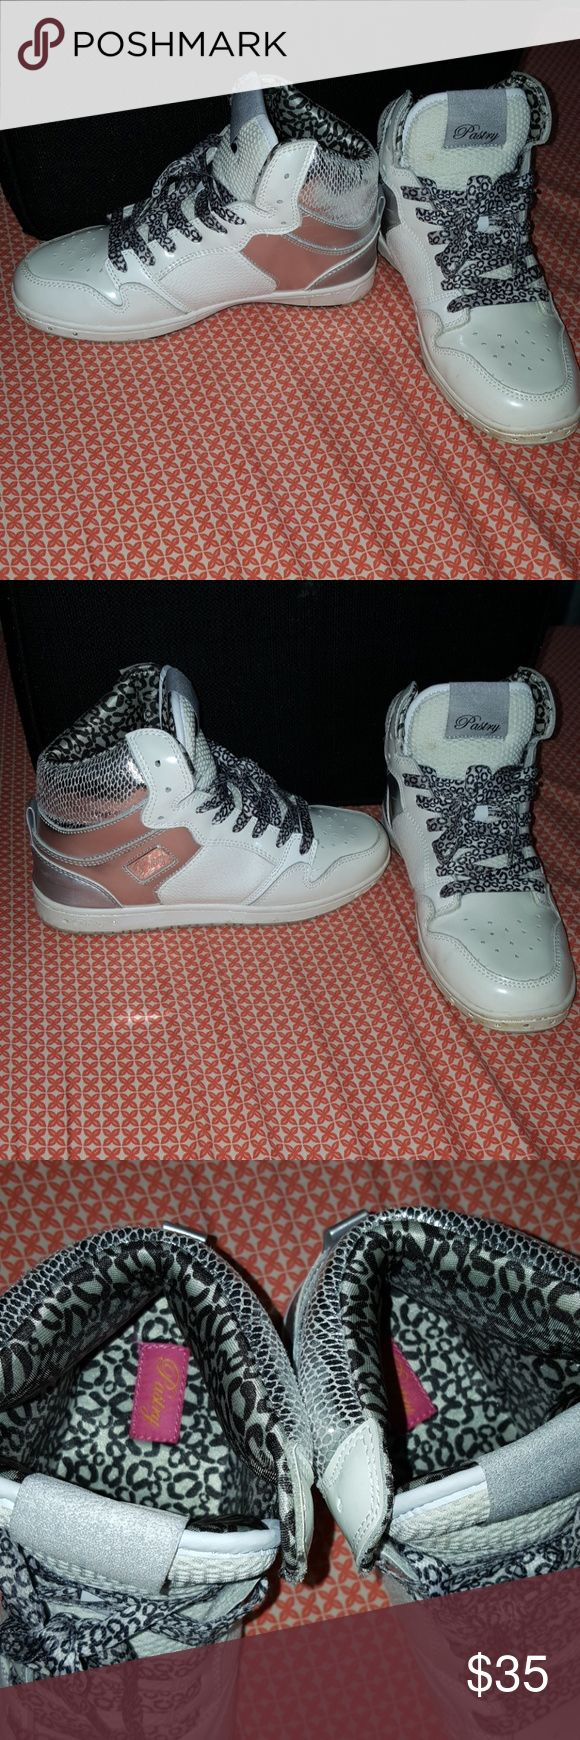 Pastry Creme Cheetah Sz.7 Shoes Cheetah Print Pasty Shoes Sz.7. Worn Once. Clean no Scuff marks True to size 7. Comes from a *Non Smoking & Pet Free Home* Pastry  Shoes Sneakers